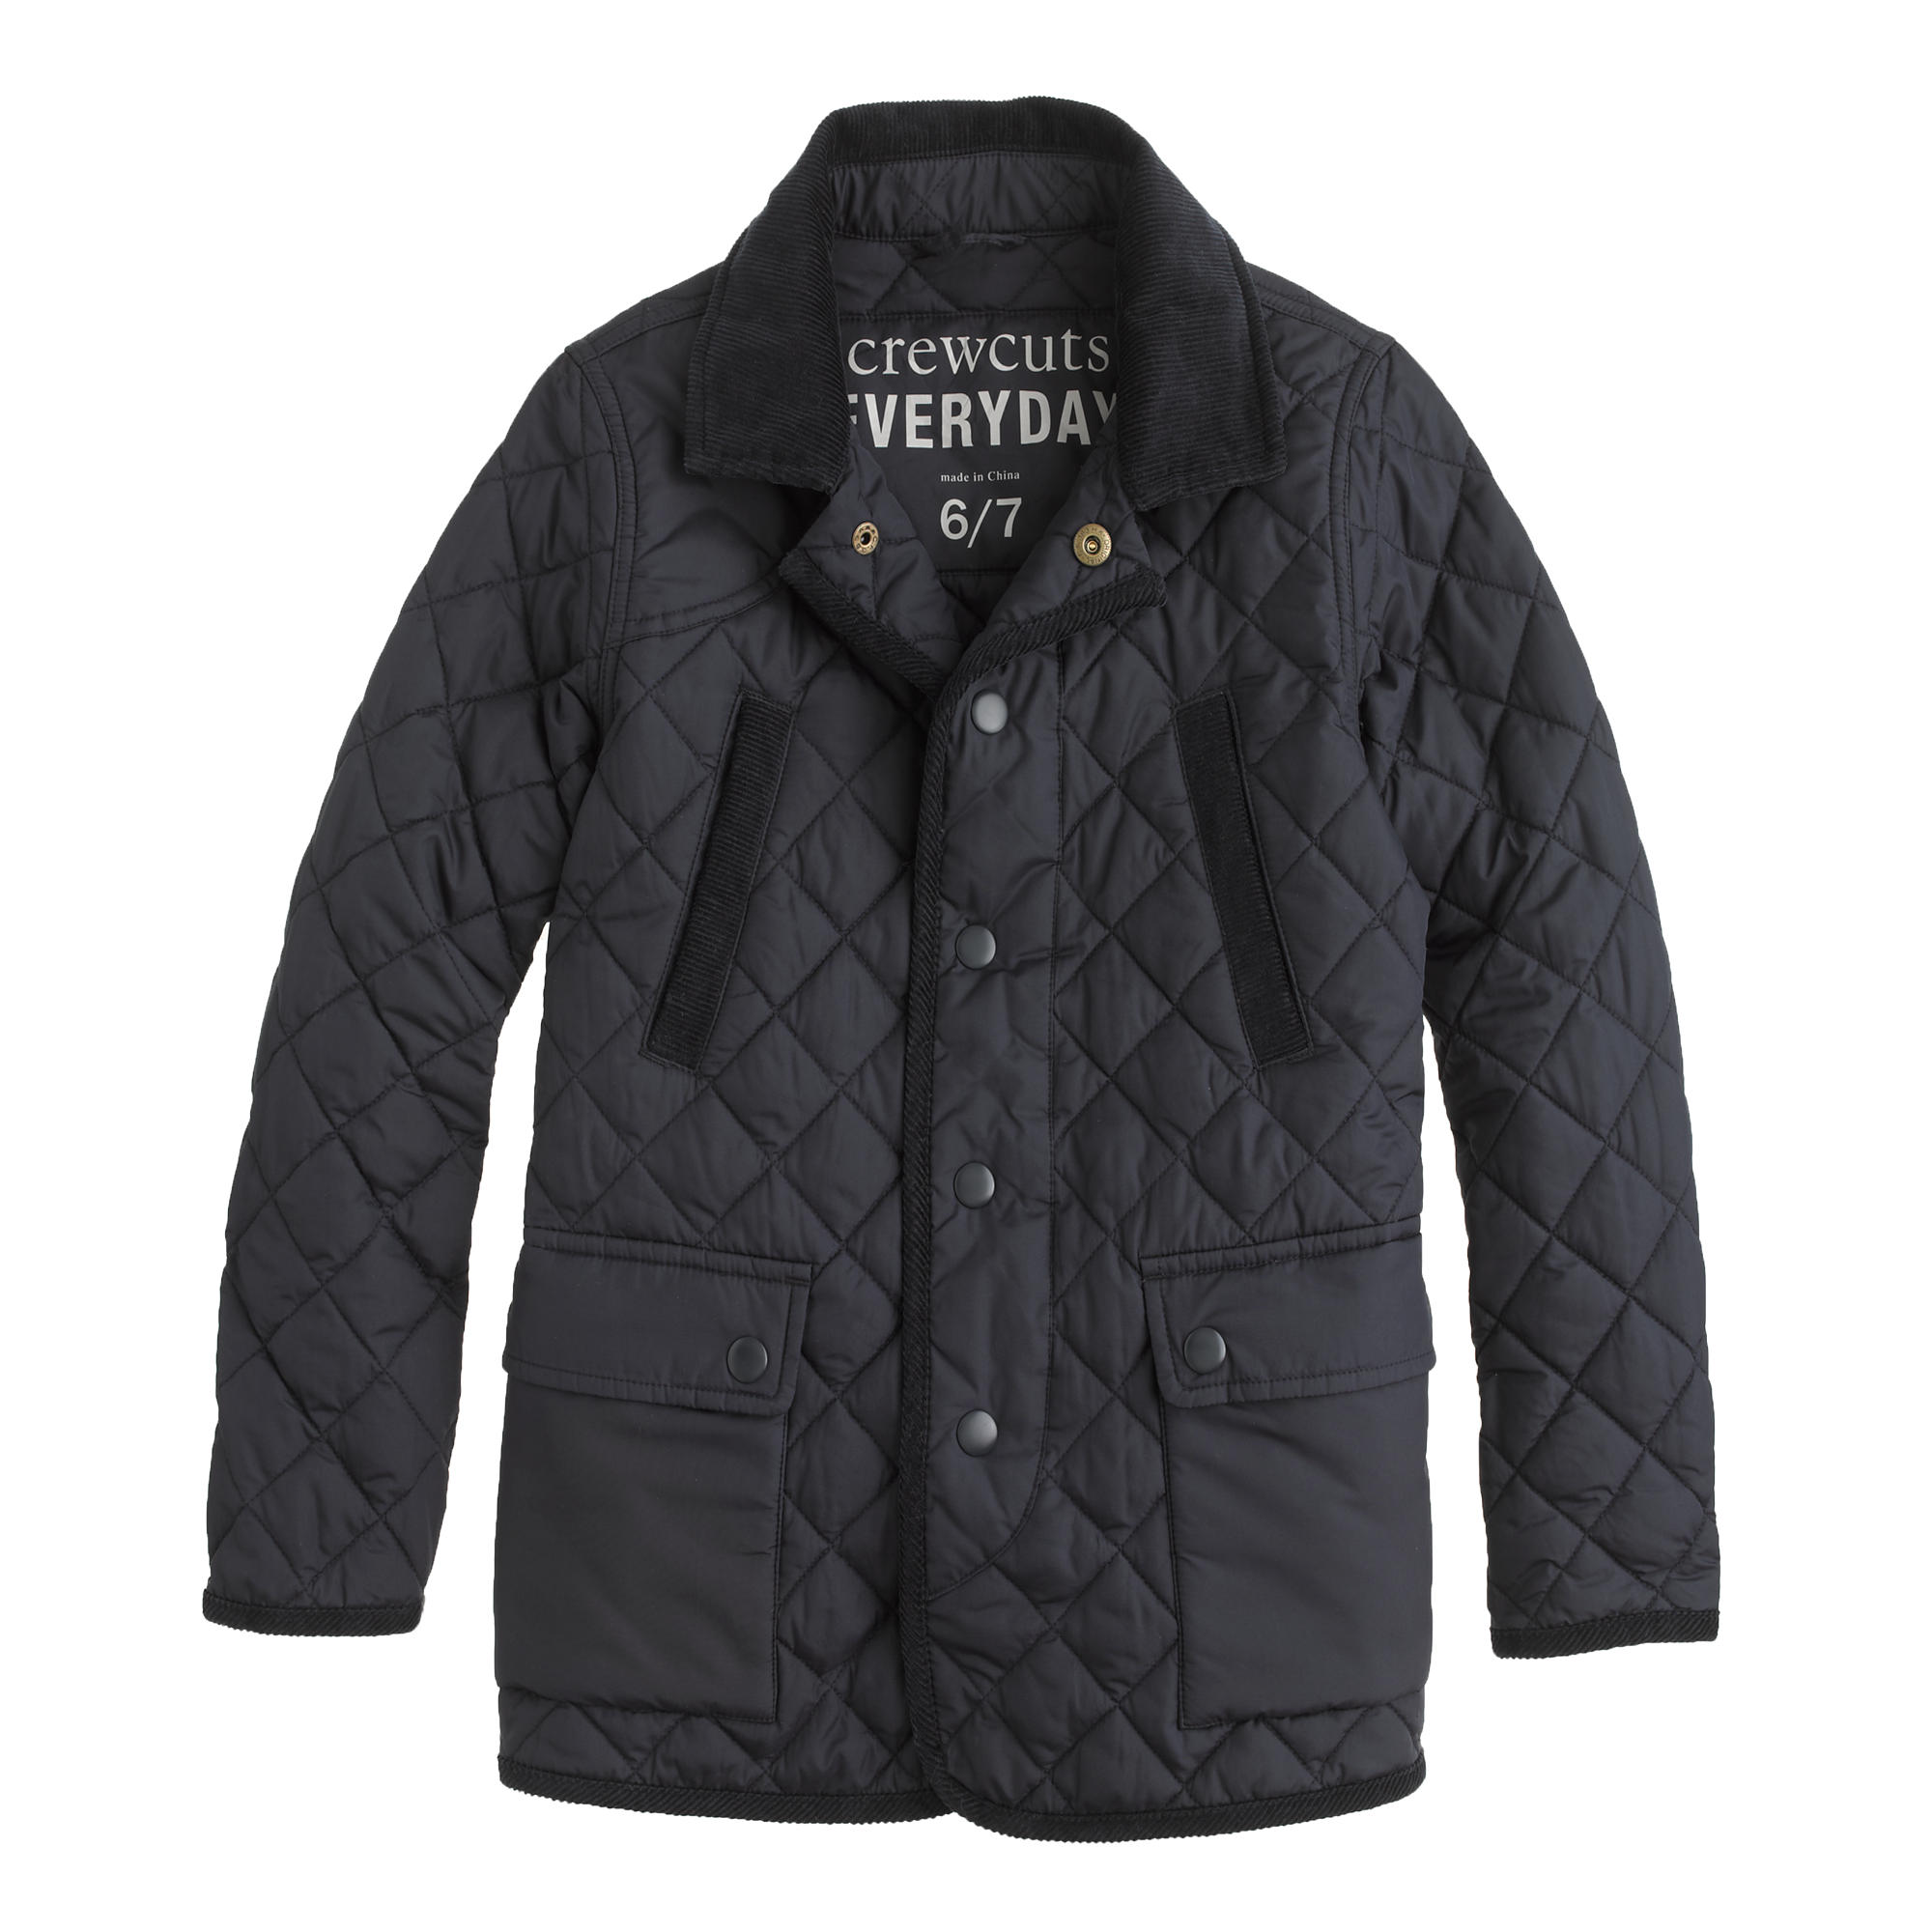 Kids Quilted Jackets ($ - $): 30 of items - Shop Kids Quilted Jackets from ALL your favorite stores & find HUGE SAVINGS up to 80% off Kids Quilted Jackets, including GREAT DEALS like E-Land Kids Quilted Jacket ($).